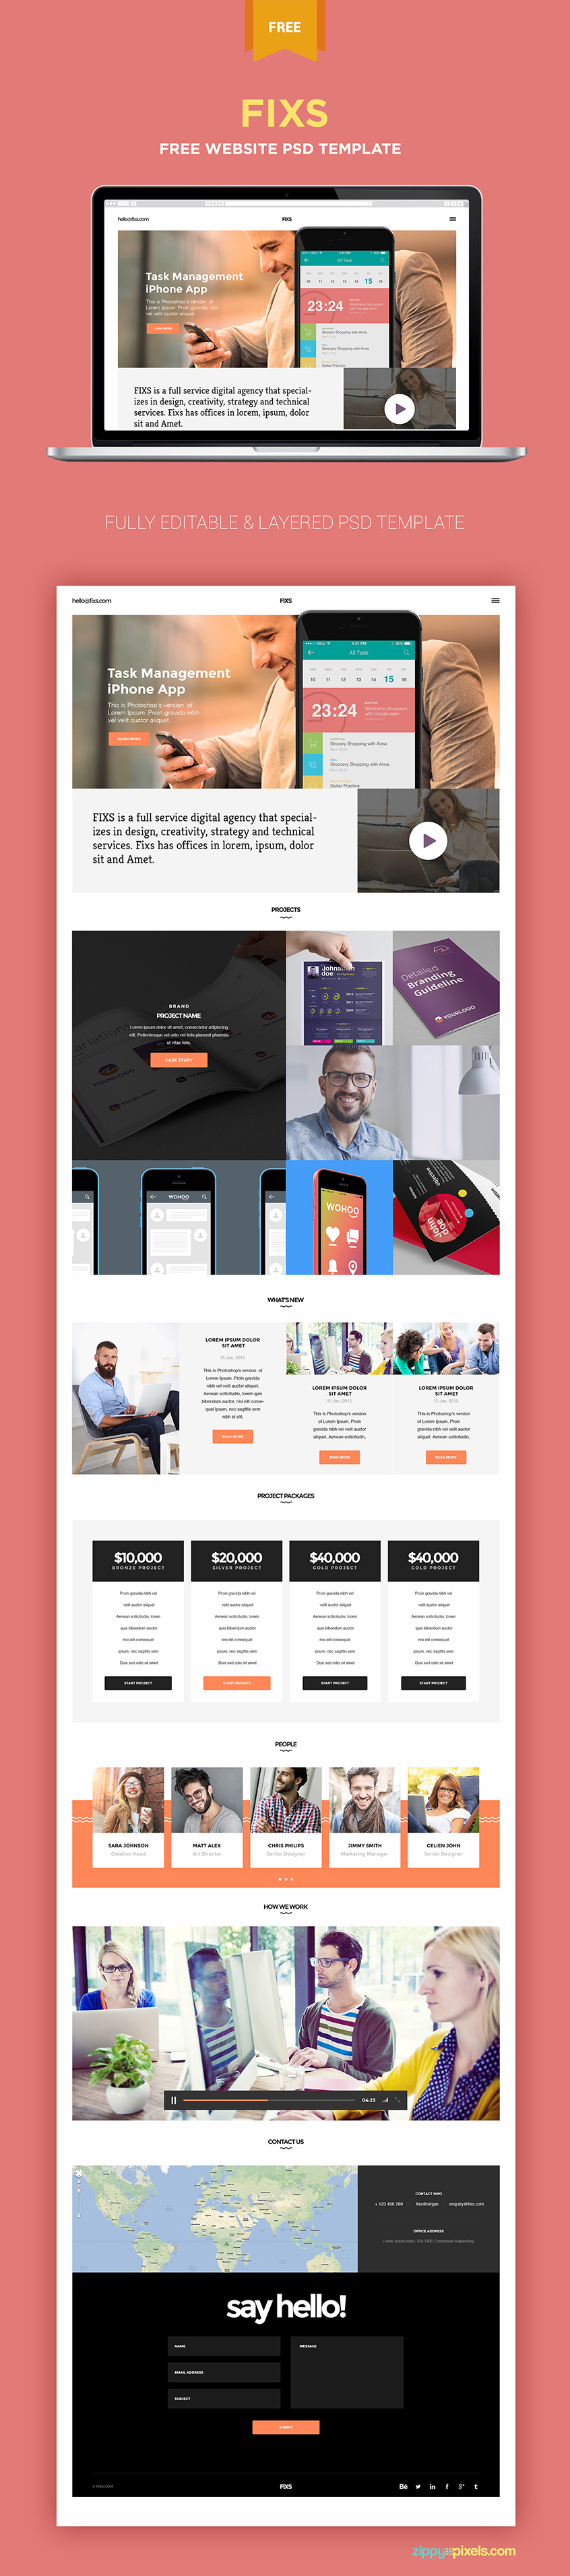 Unika view this free template ». Free Single Page Website Template Zippypixels